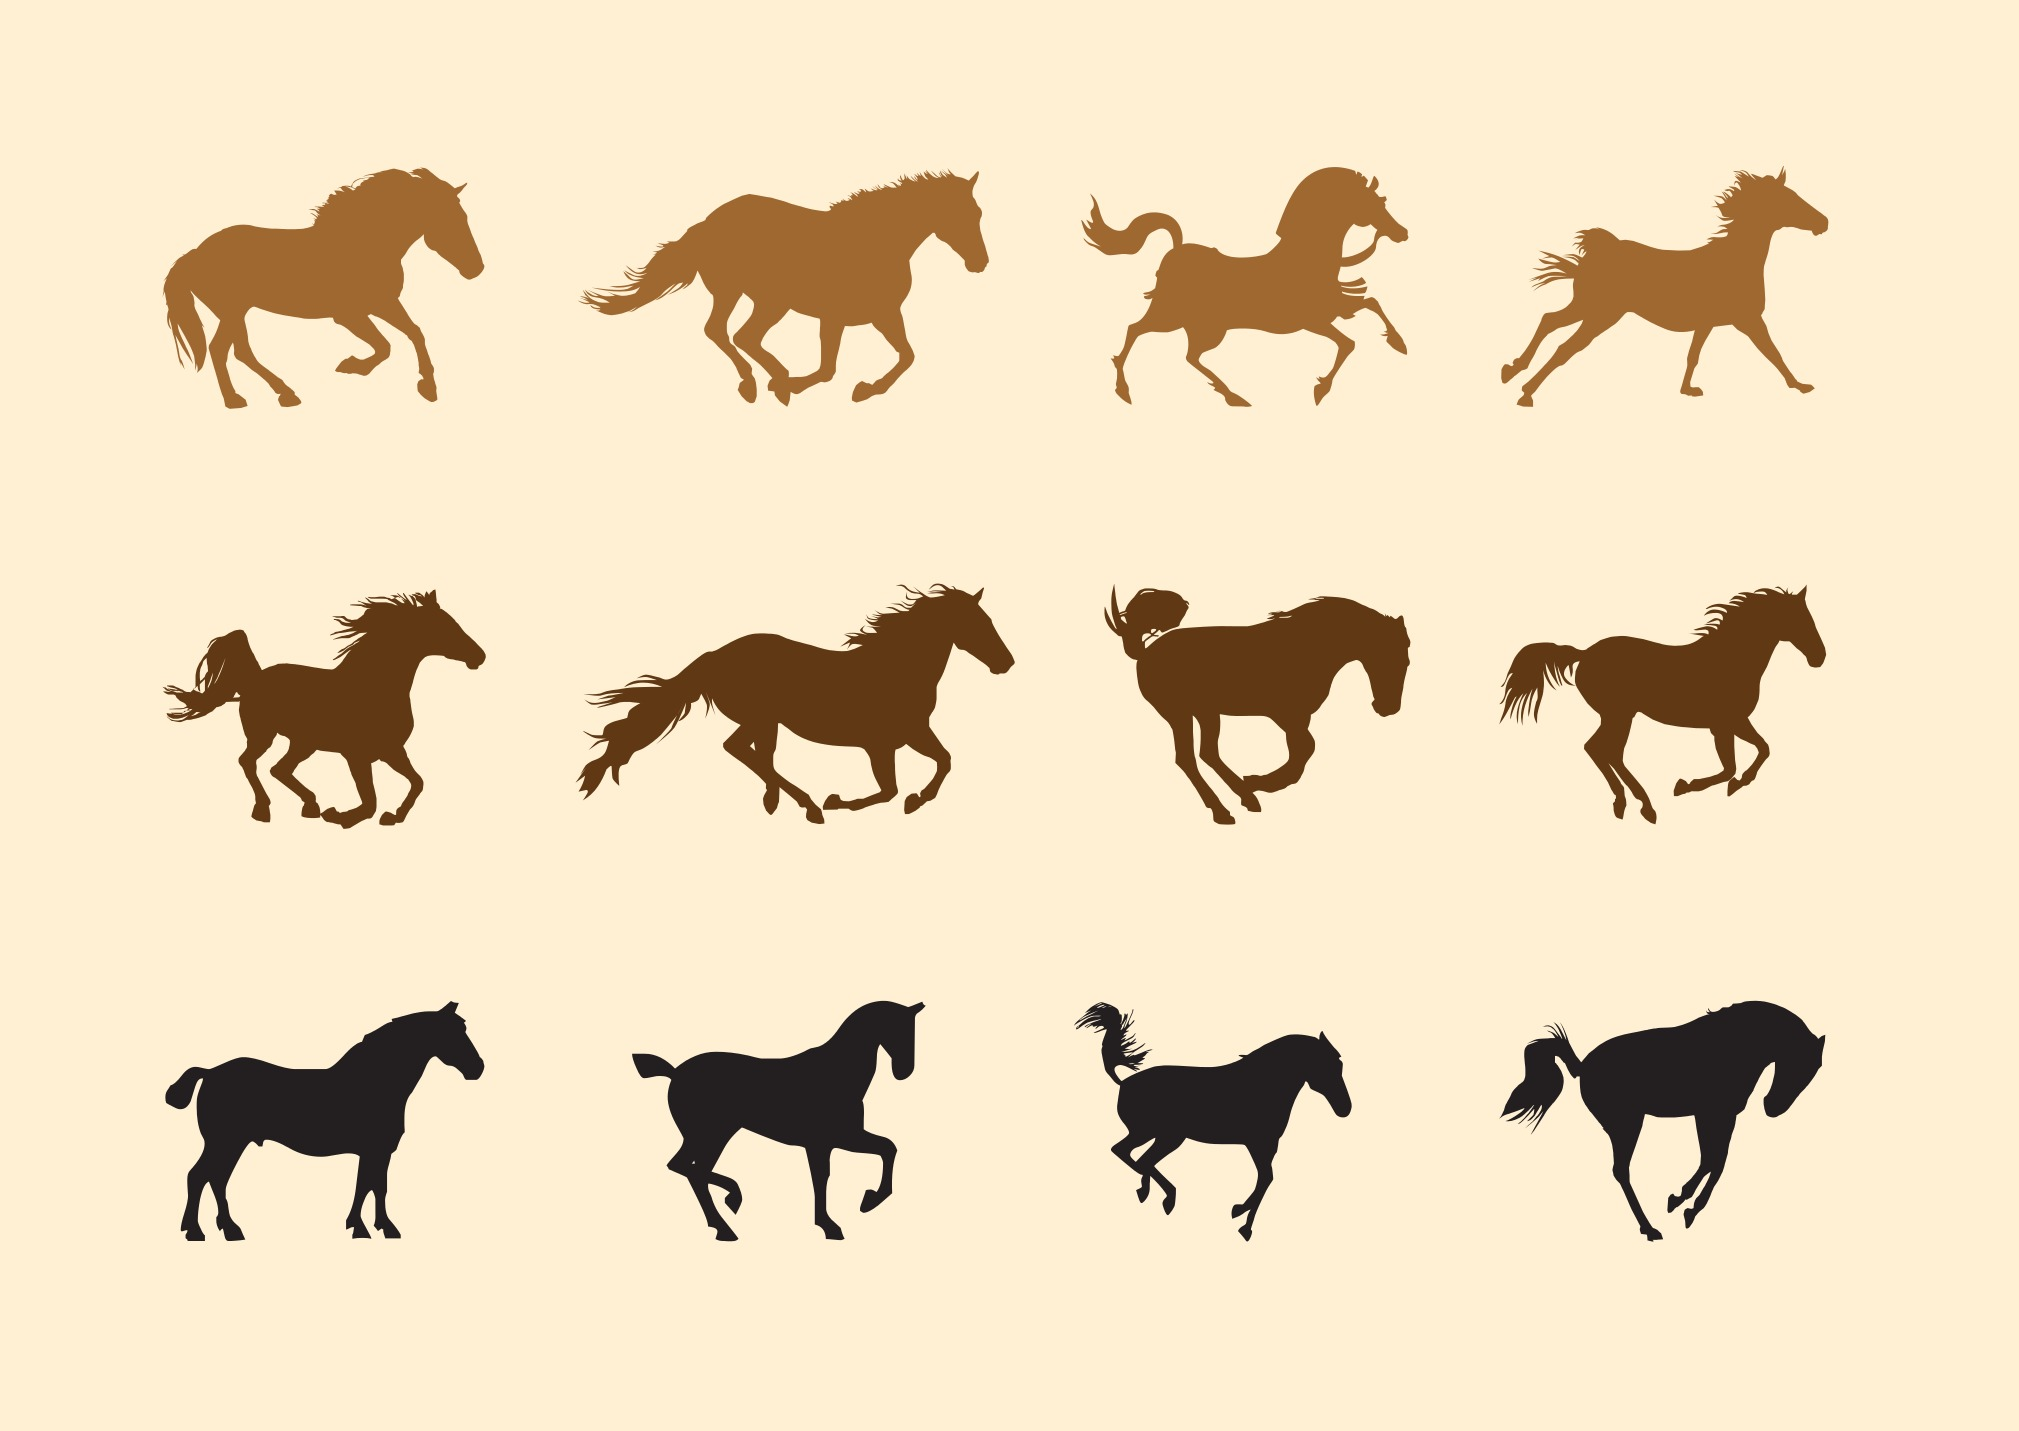 Horses Silhouettes Set Download Free Vector Art Stock